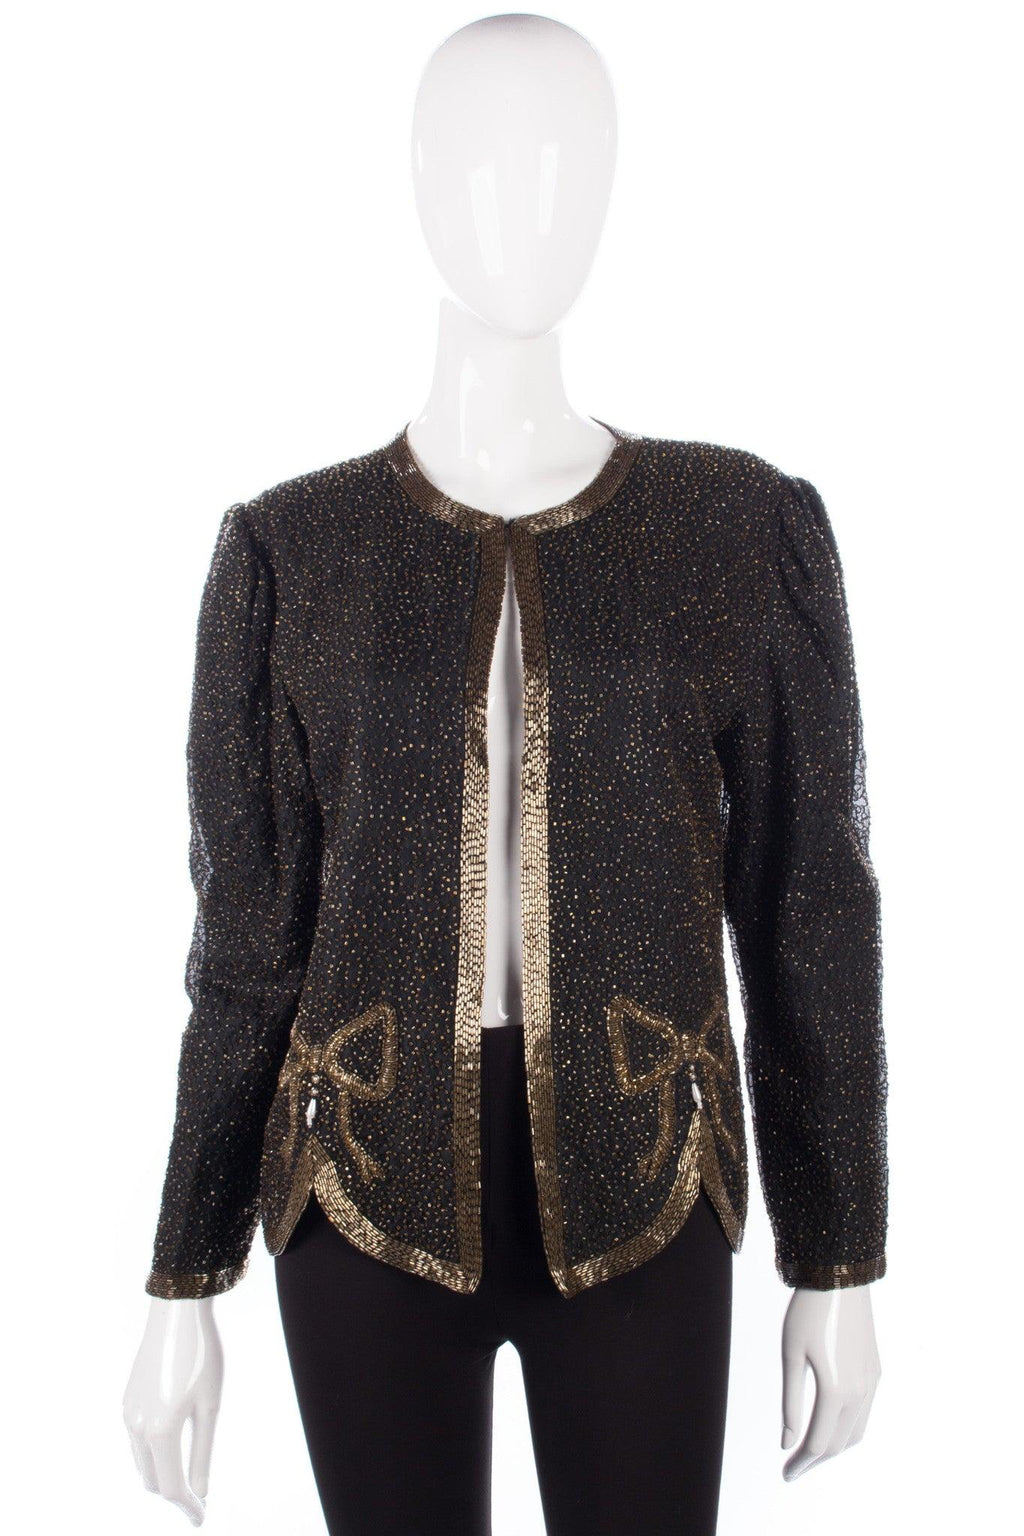 Razzle Dazzle Sequinned Jacket Black and Gold  UK 12/14